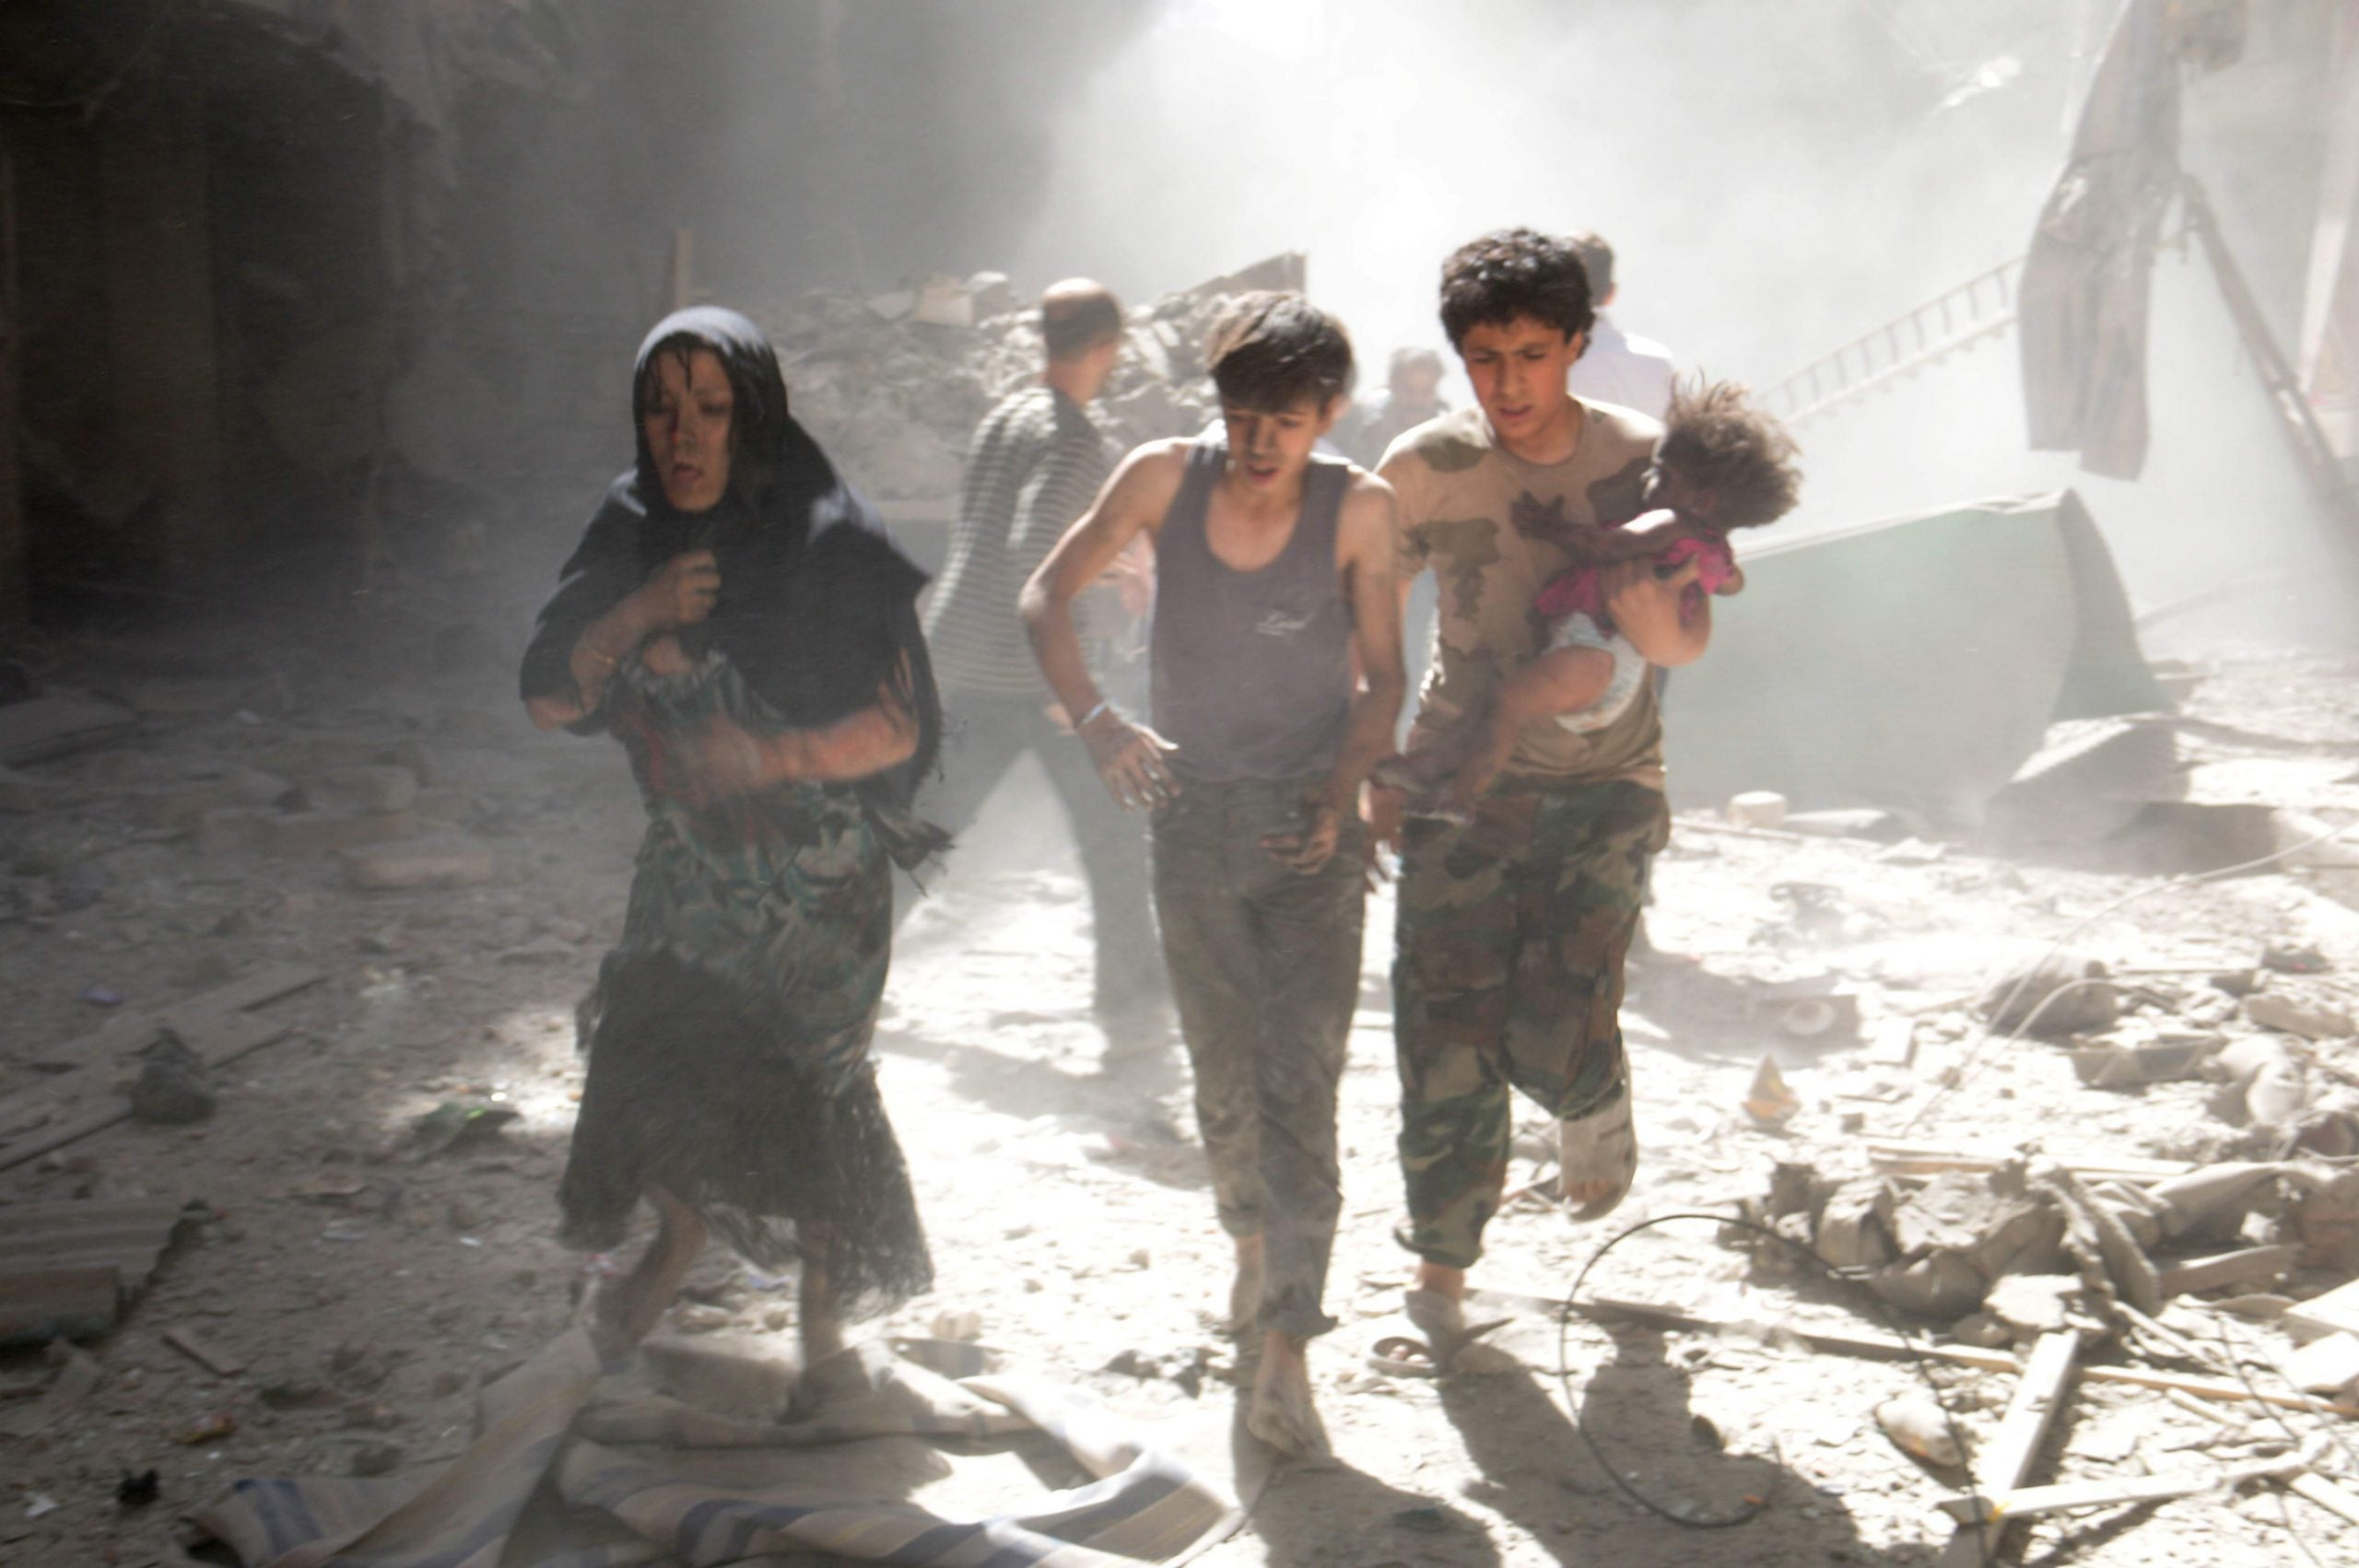 As Syrian forces lay waste to Aleppo, how much longer can we tolerate the slaughter?